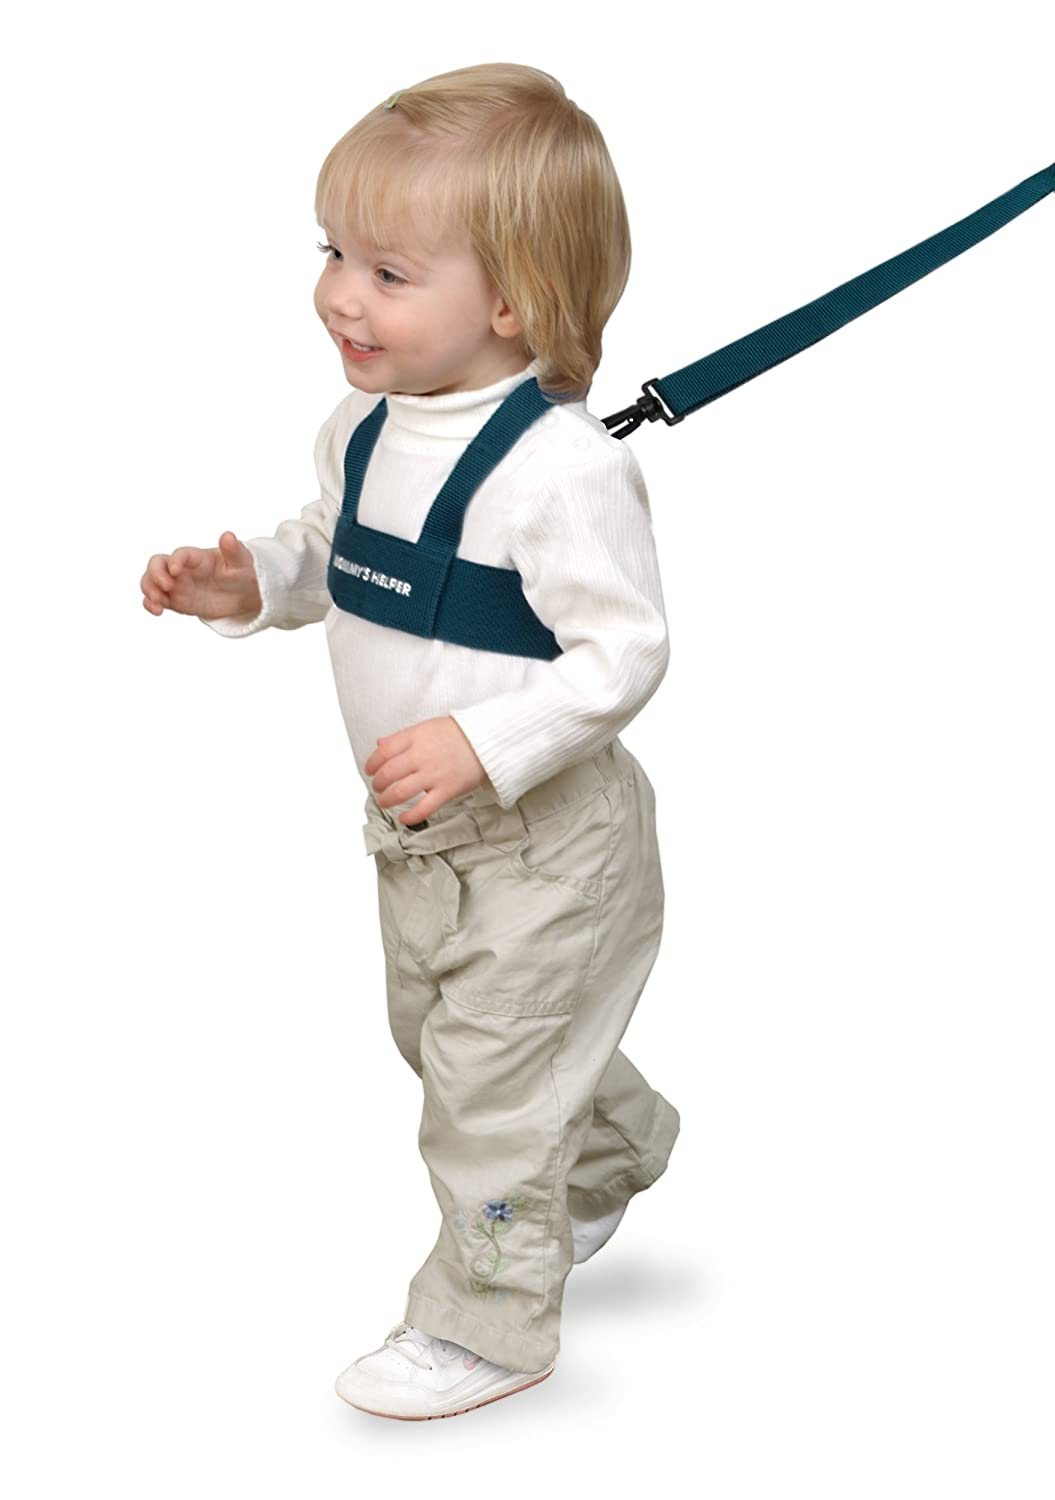 B00081L2SU Toddler Leash & Harness for Child Safety - Keep Kids & Babies Close - Padded Shoulder Straps for Children's Comfort - Fits Toddlers w/ Chest Size 14-25 Inches - Kid Keeper by Mommy's Helper (Blue) 71WjsjuQfZL